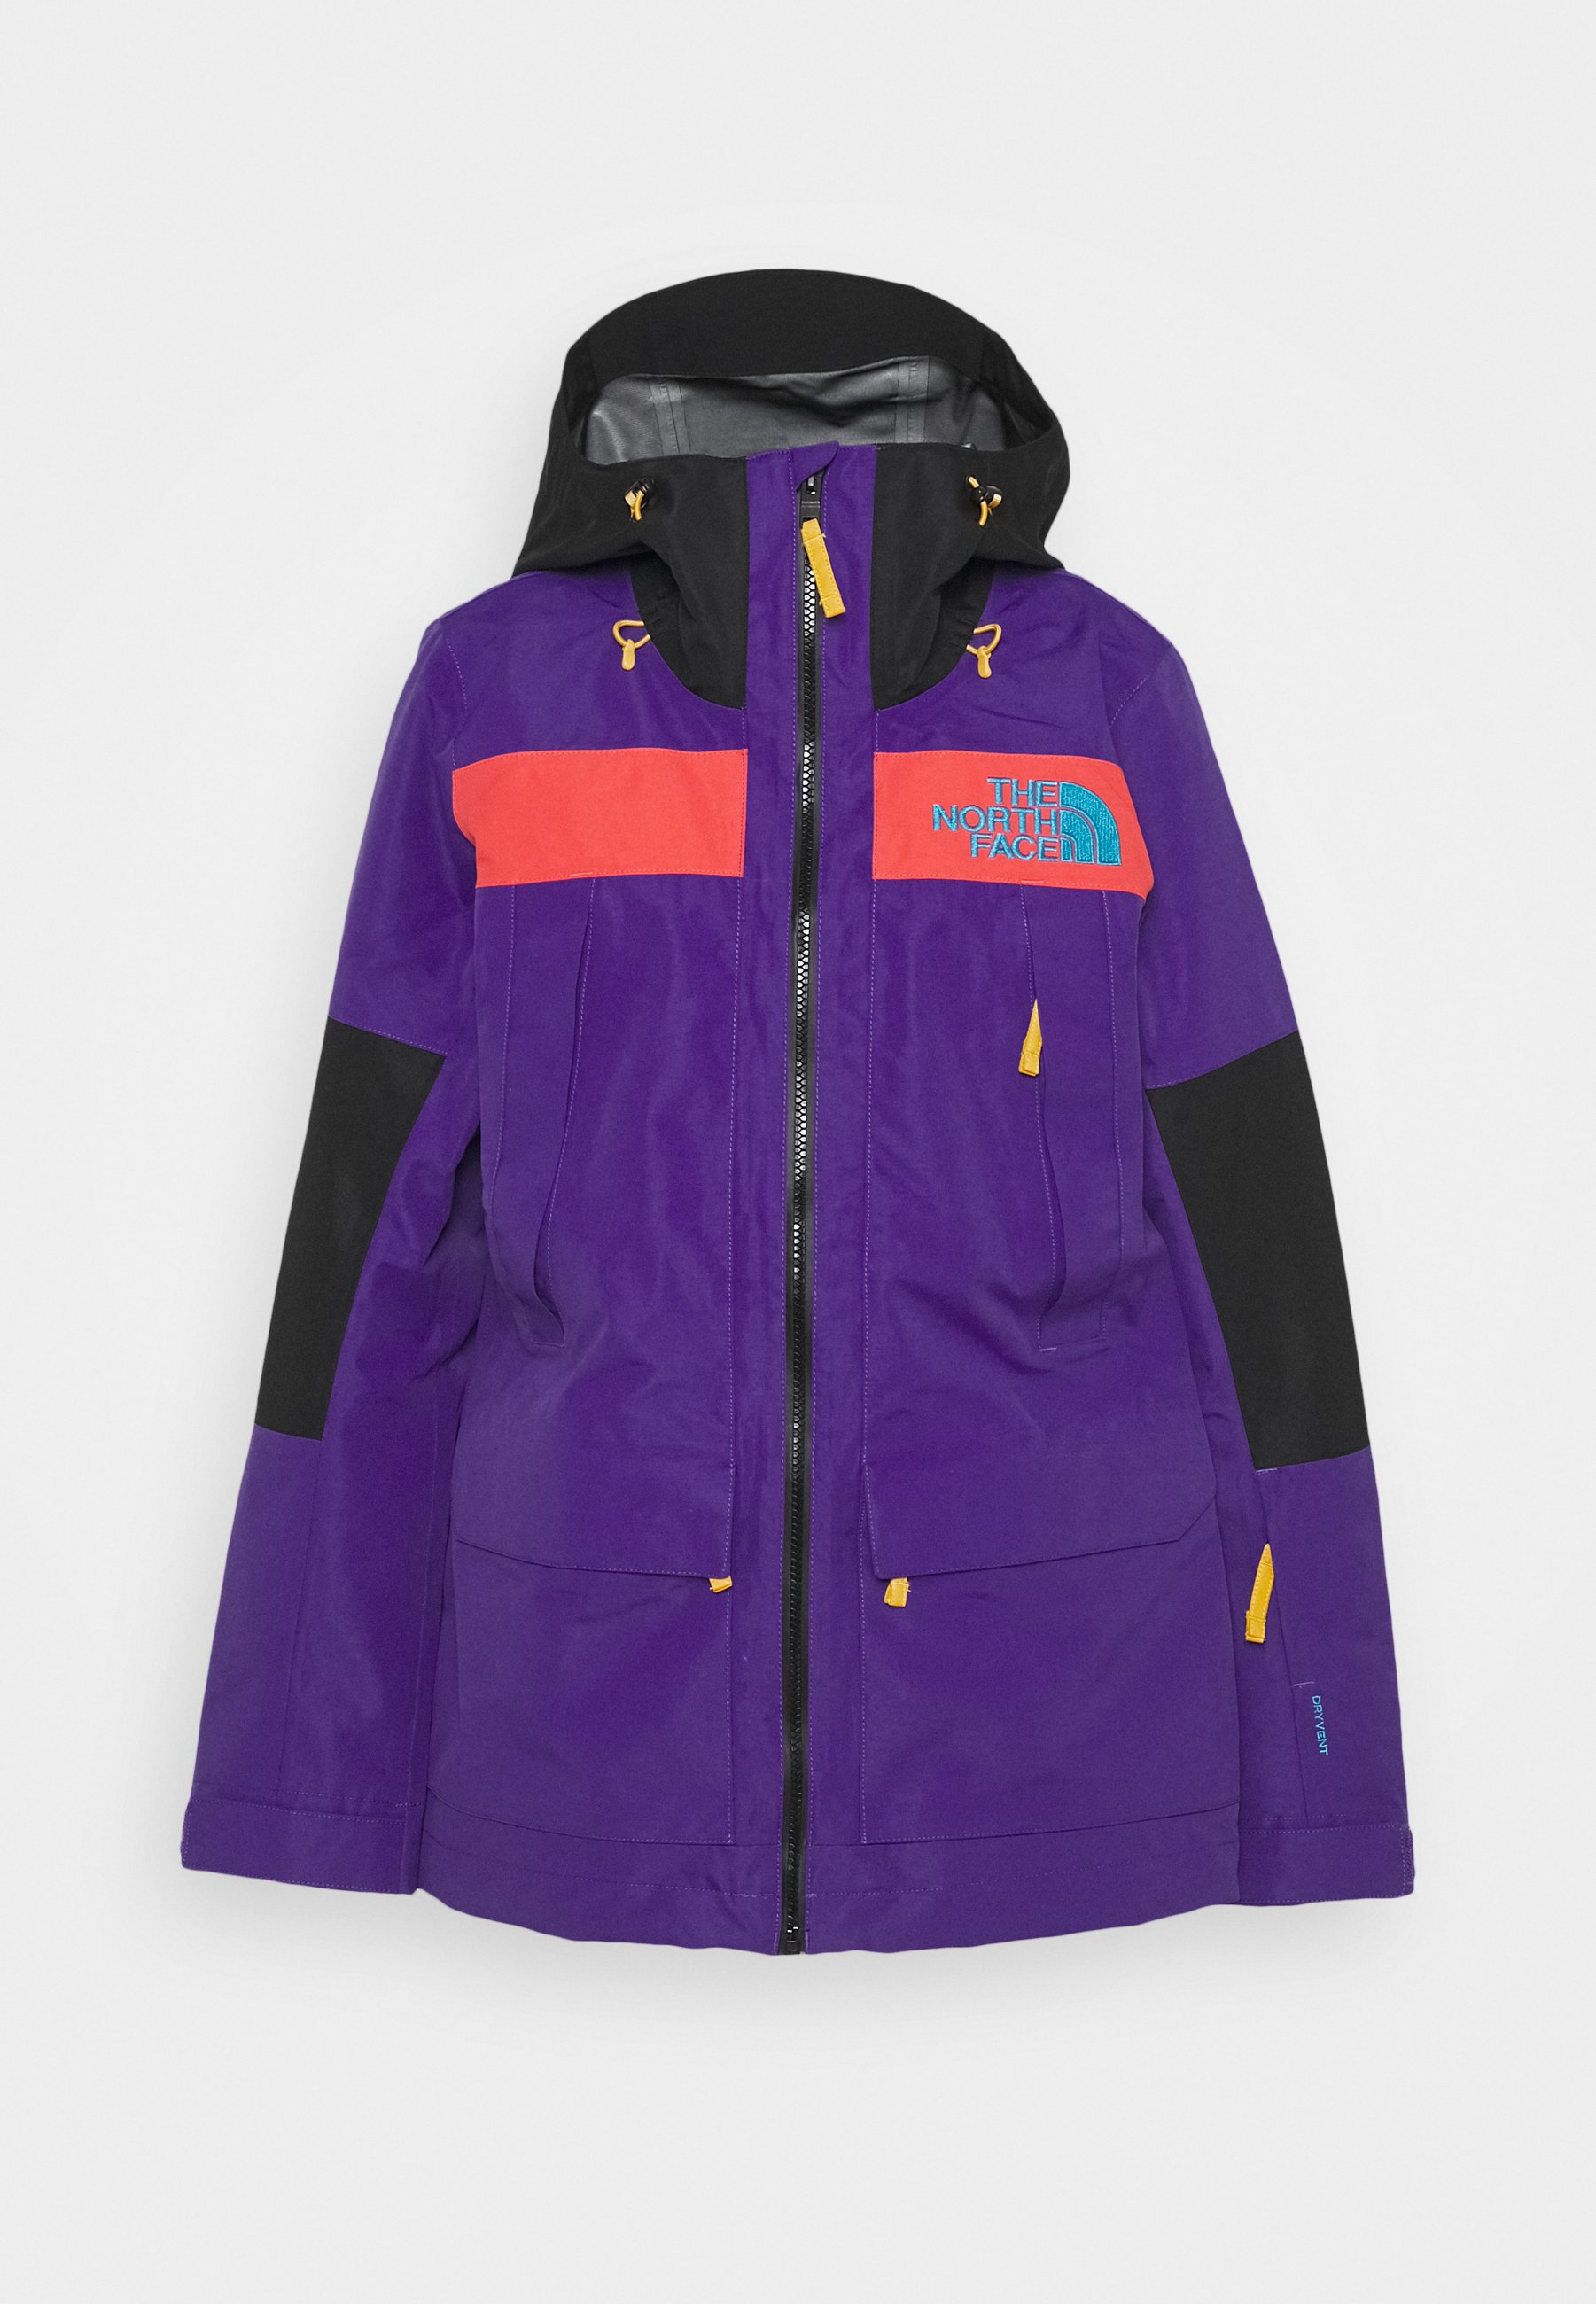 The North Face - TEAM KIT JACKET - Chaqueta outdoor - purple/red/black